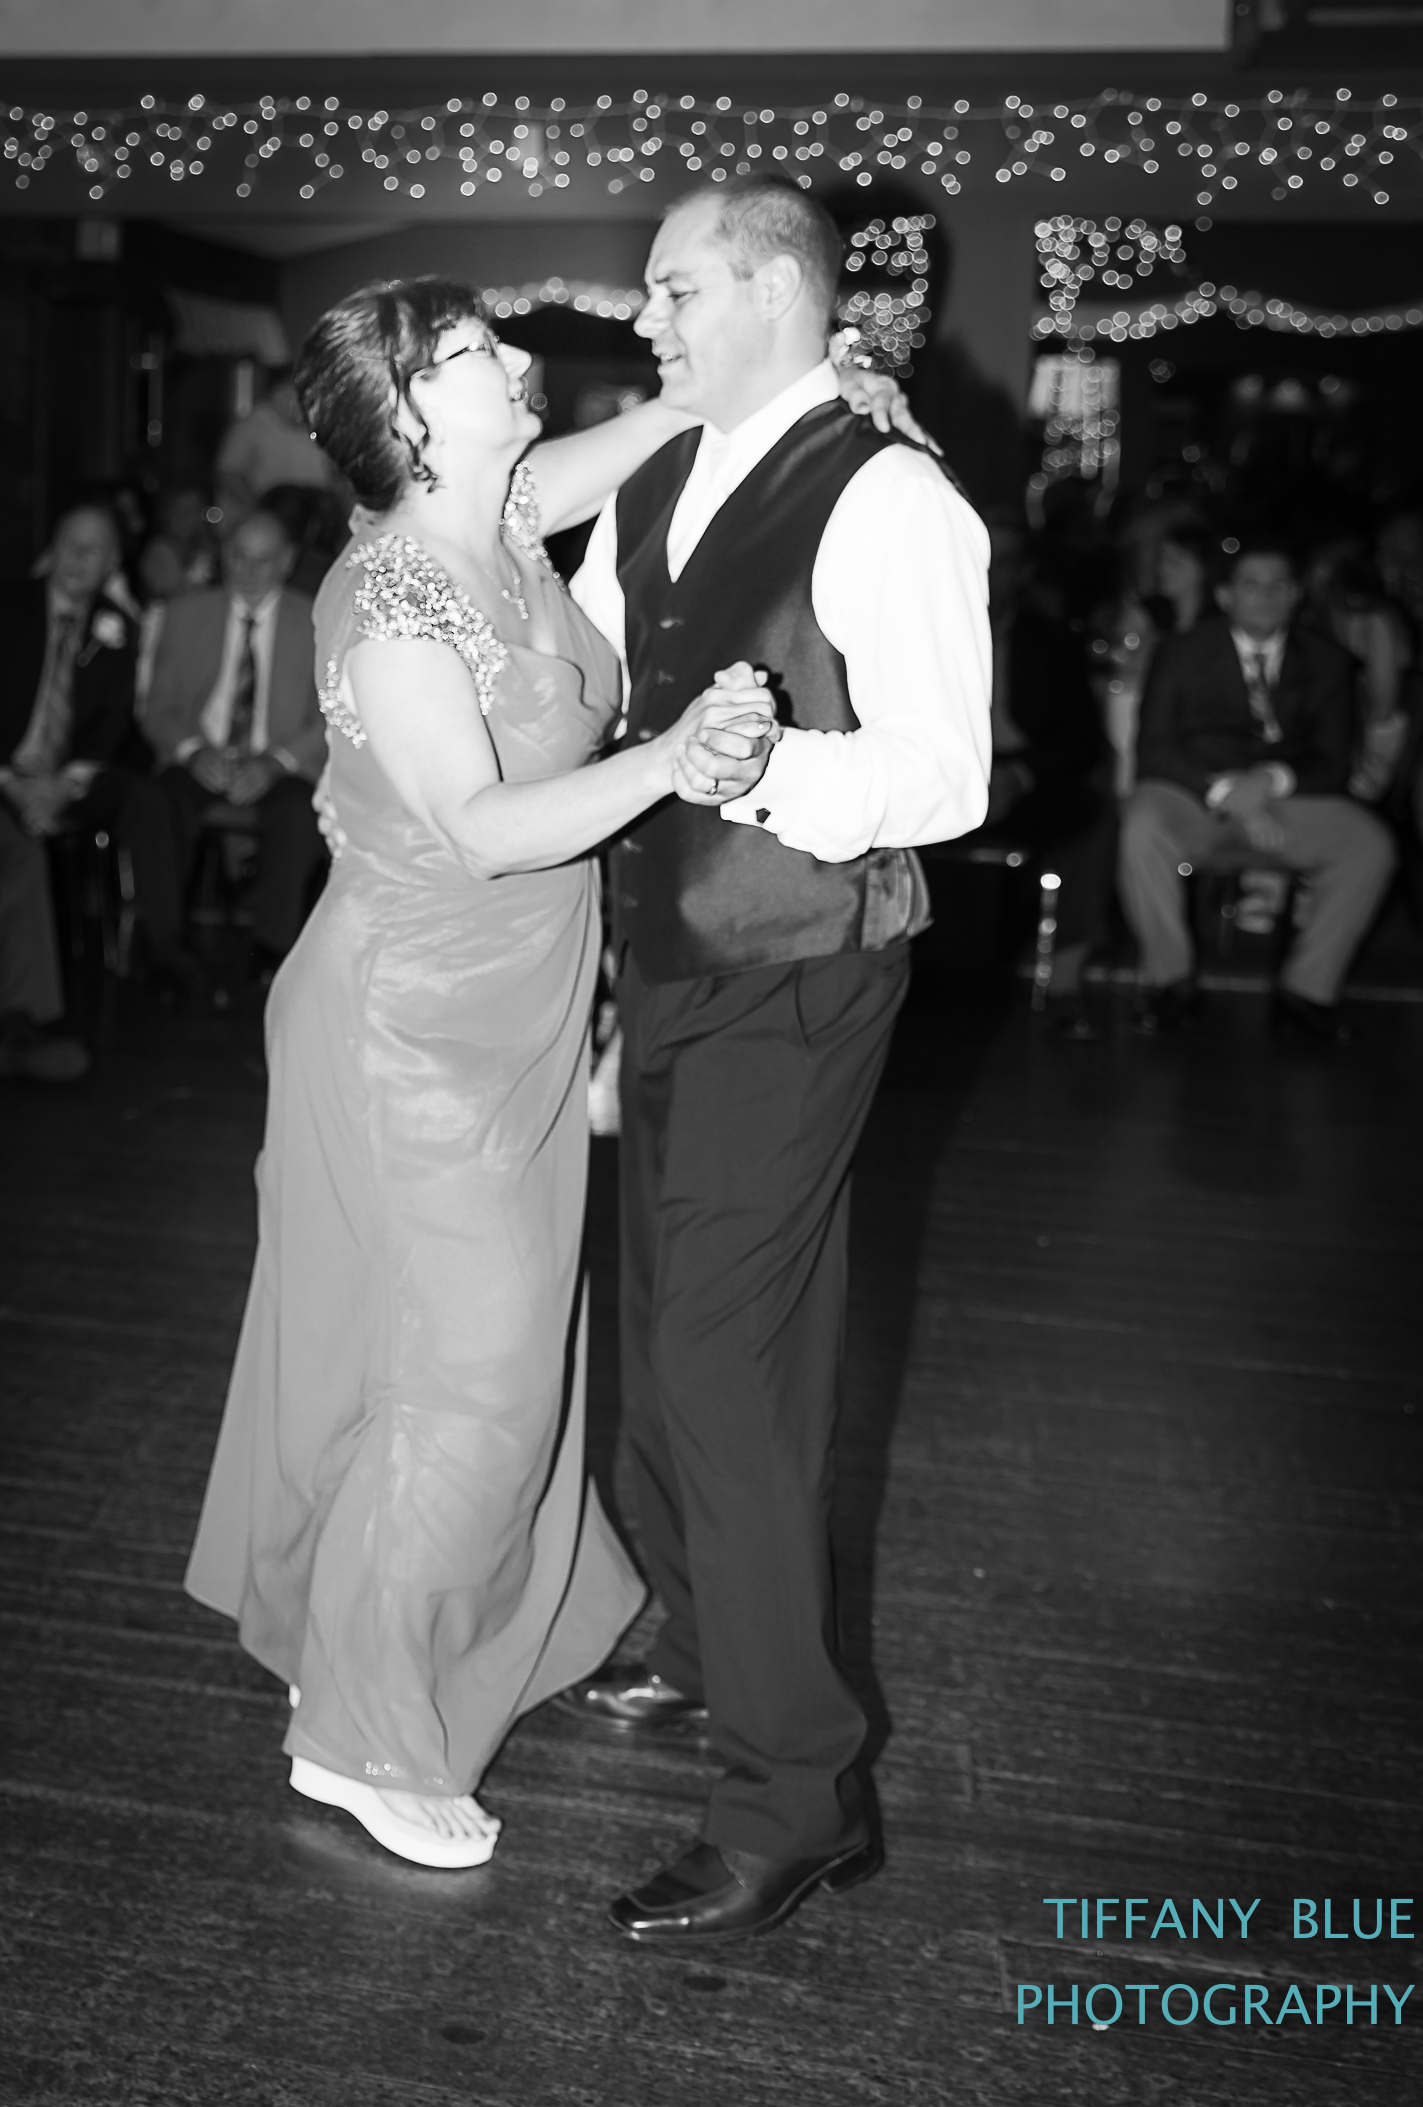 Chris & Nicole's Wedding (61 of 76).jpg